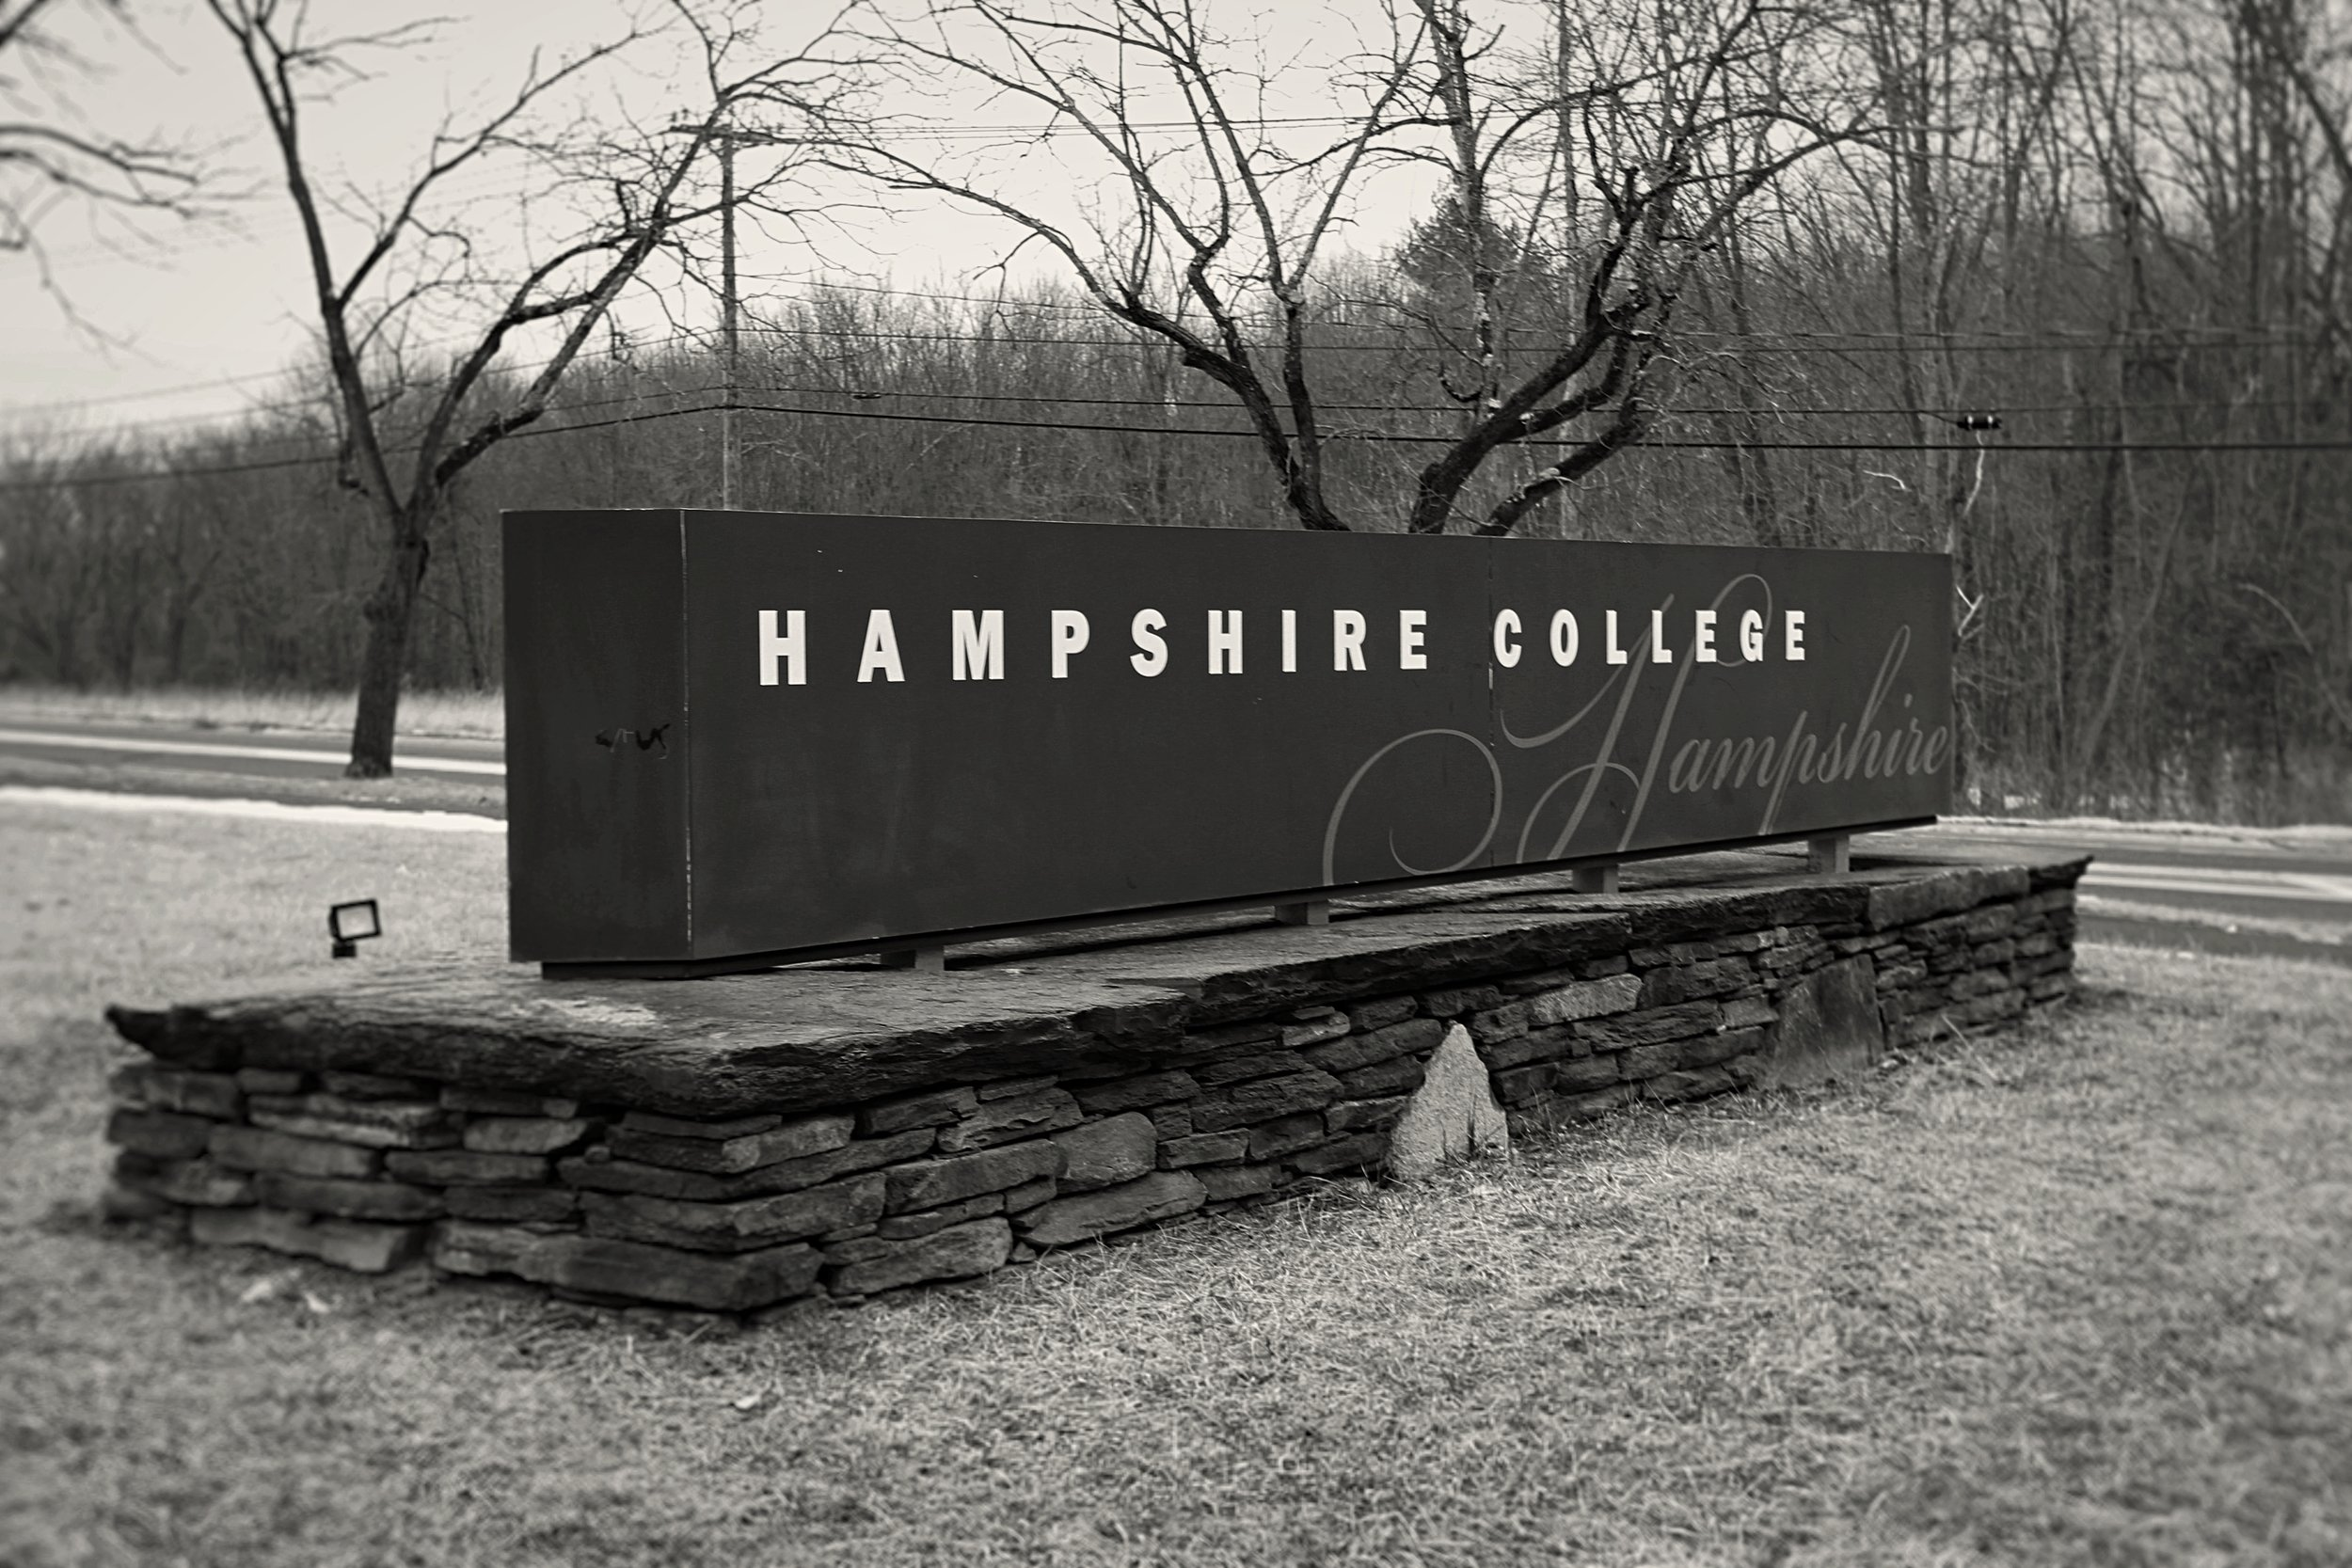 Photo by Grace Mercer '22  Hampshire College community members have responded to recent news of financial trouble with a call for greater transparency as the College seeks a long-term financial partner.